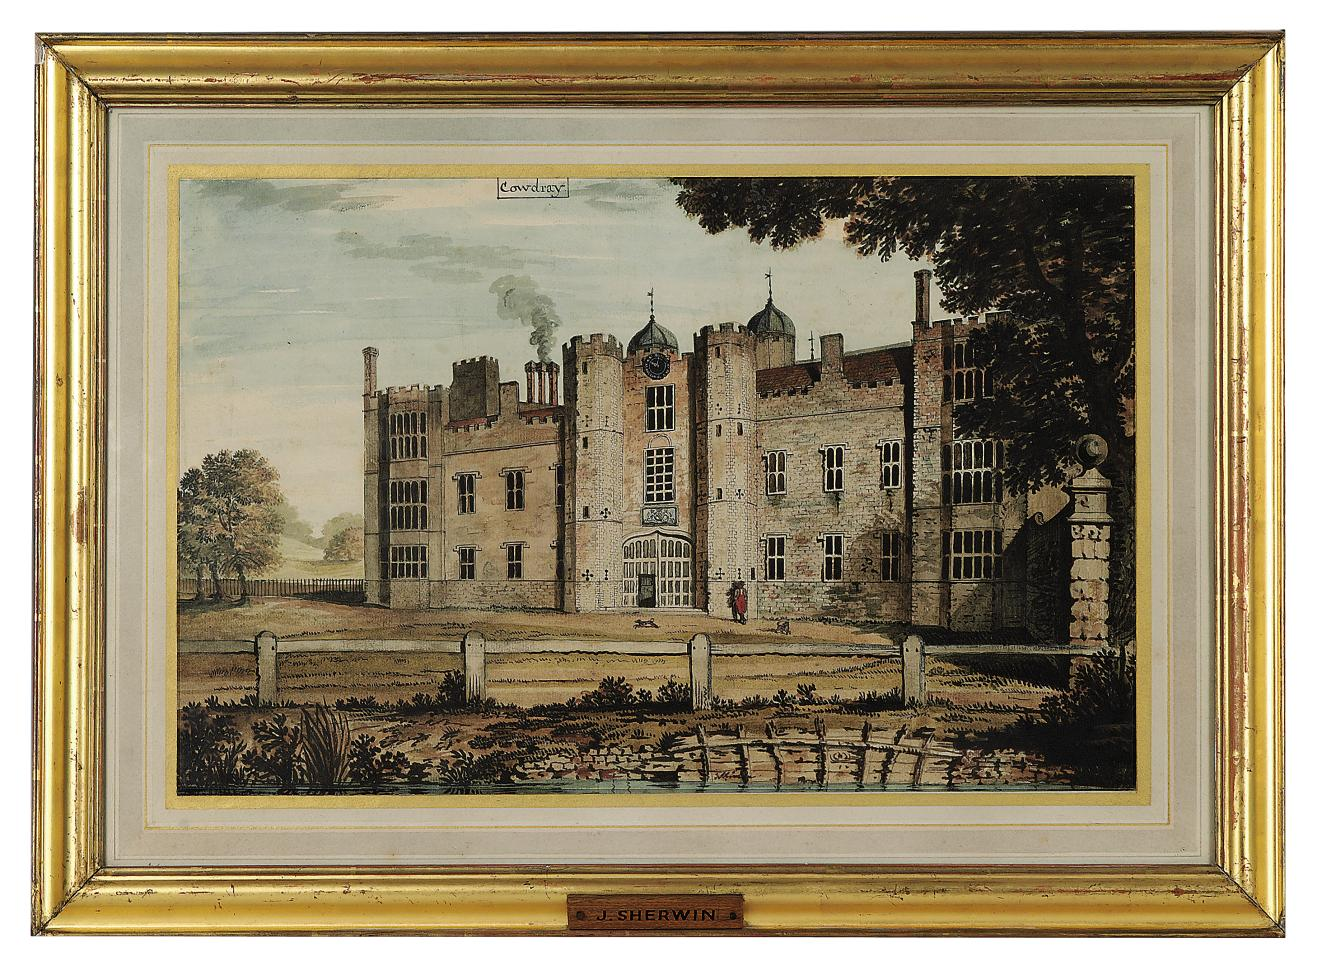 Cowdray House, Sussex